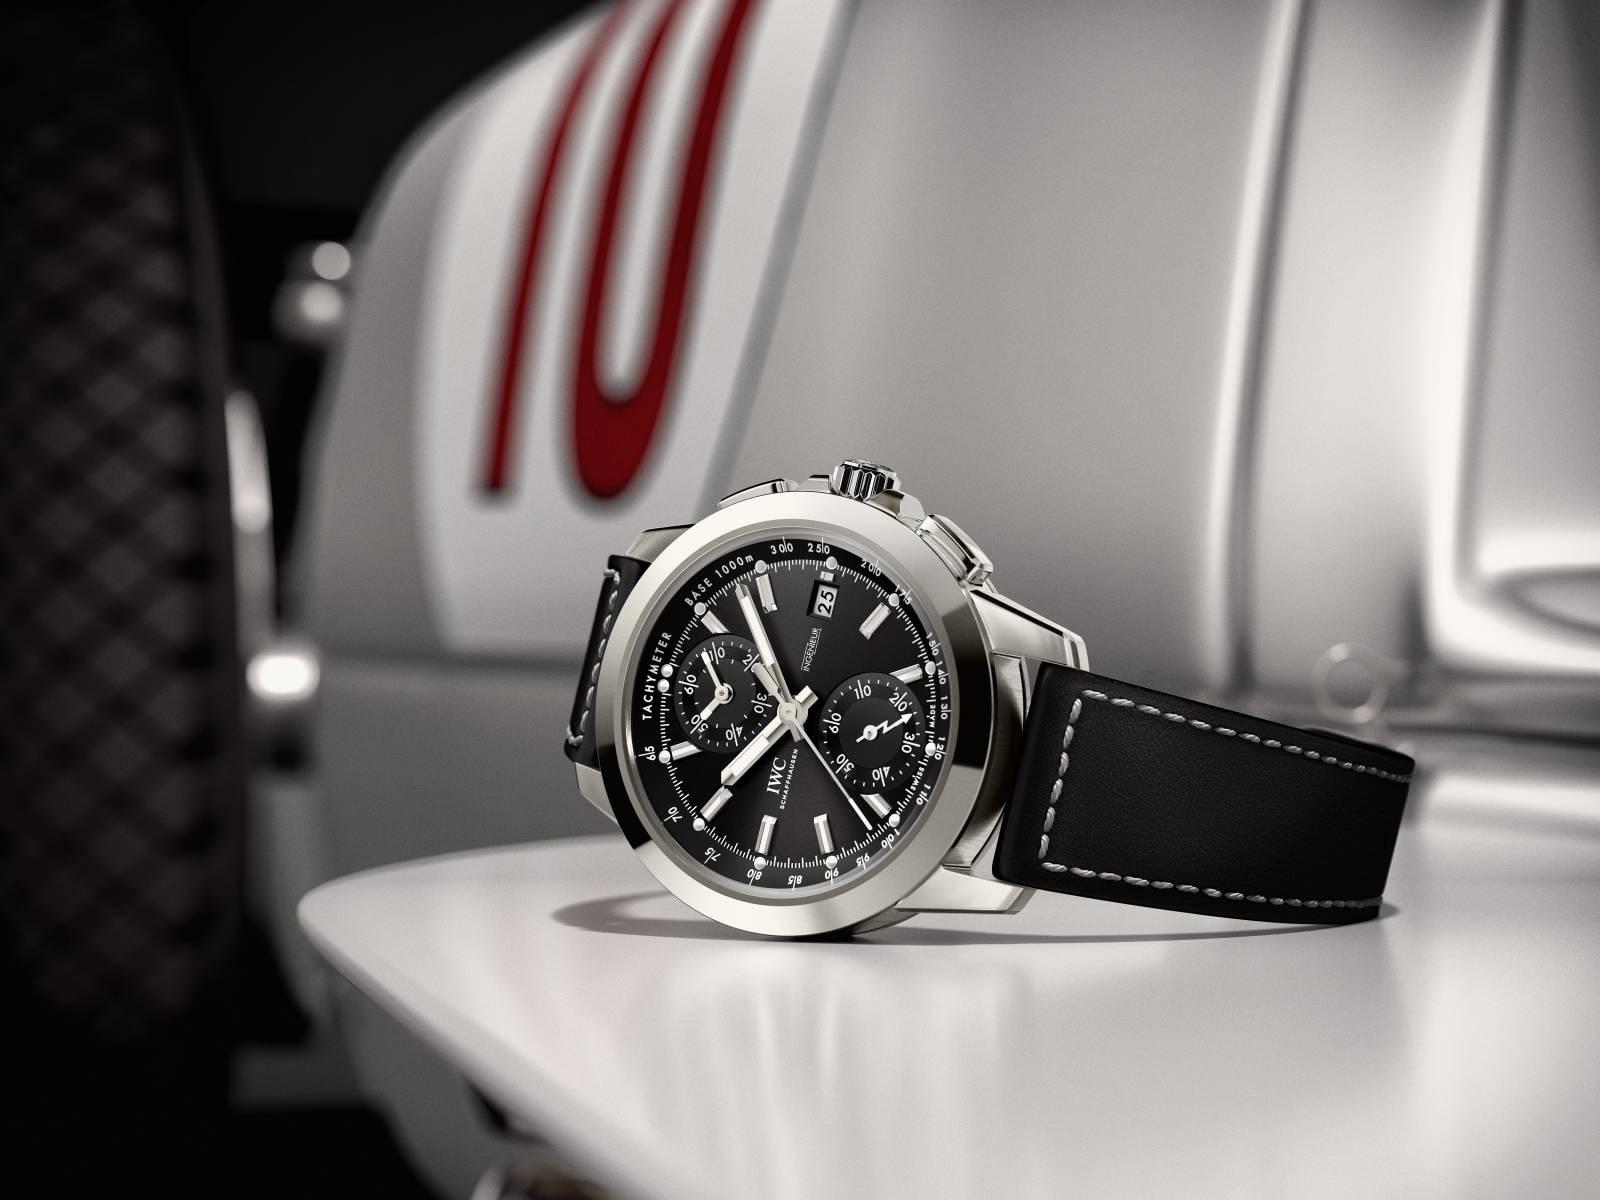 iwc-ingenieur-iw380901-mood.jpg